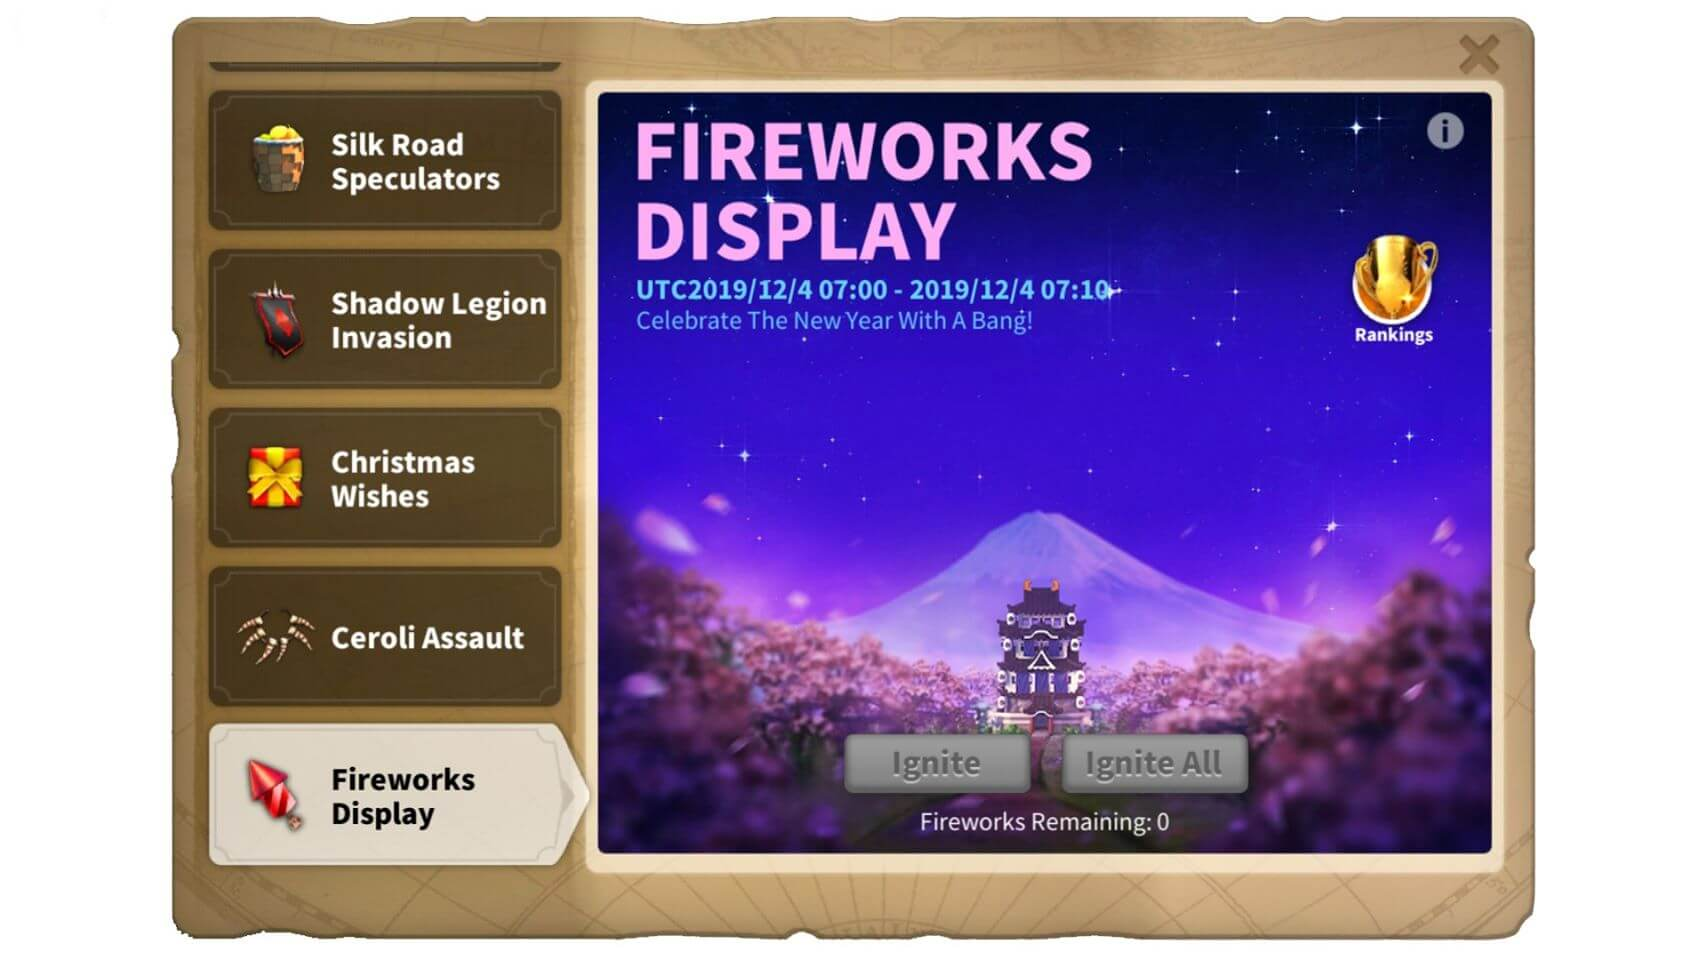 fireworks display event